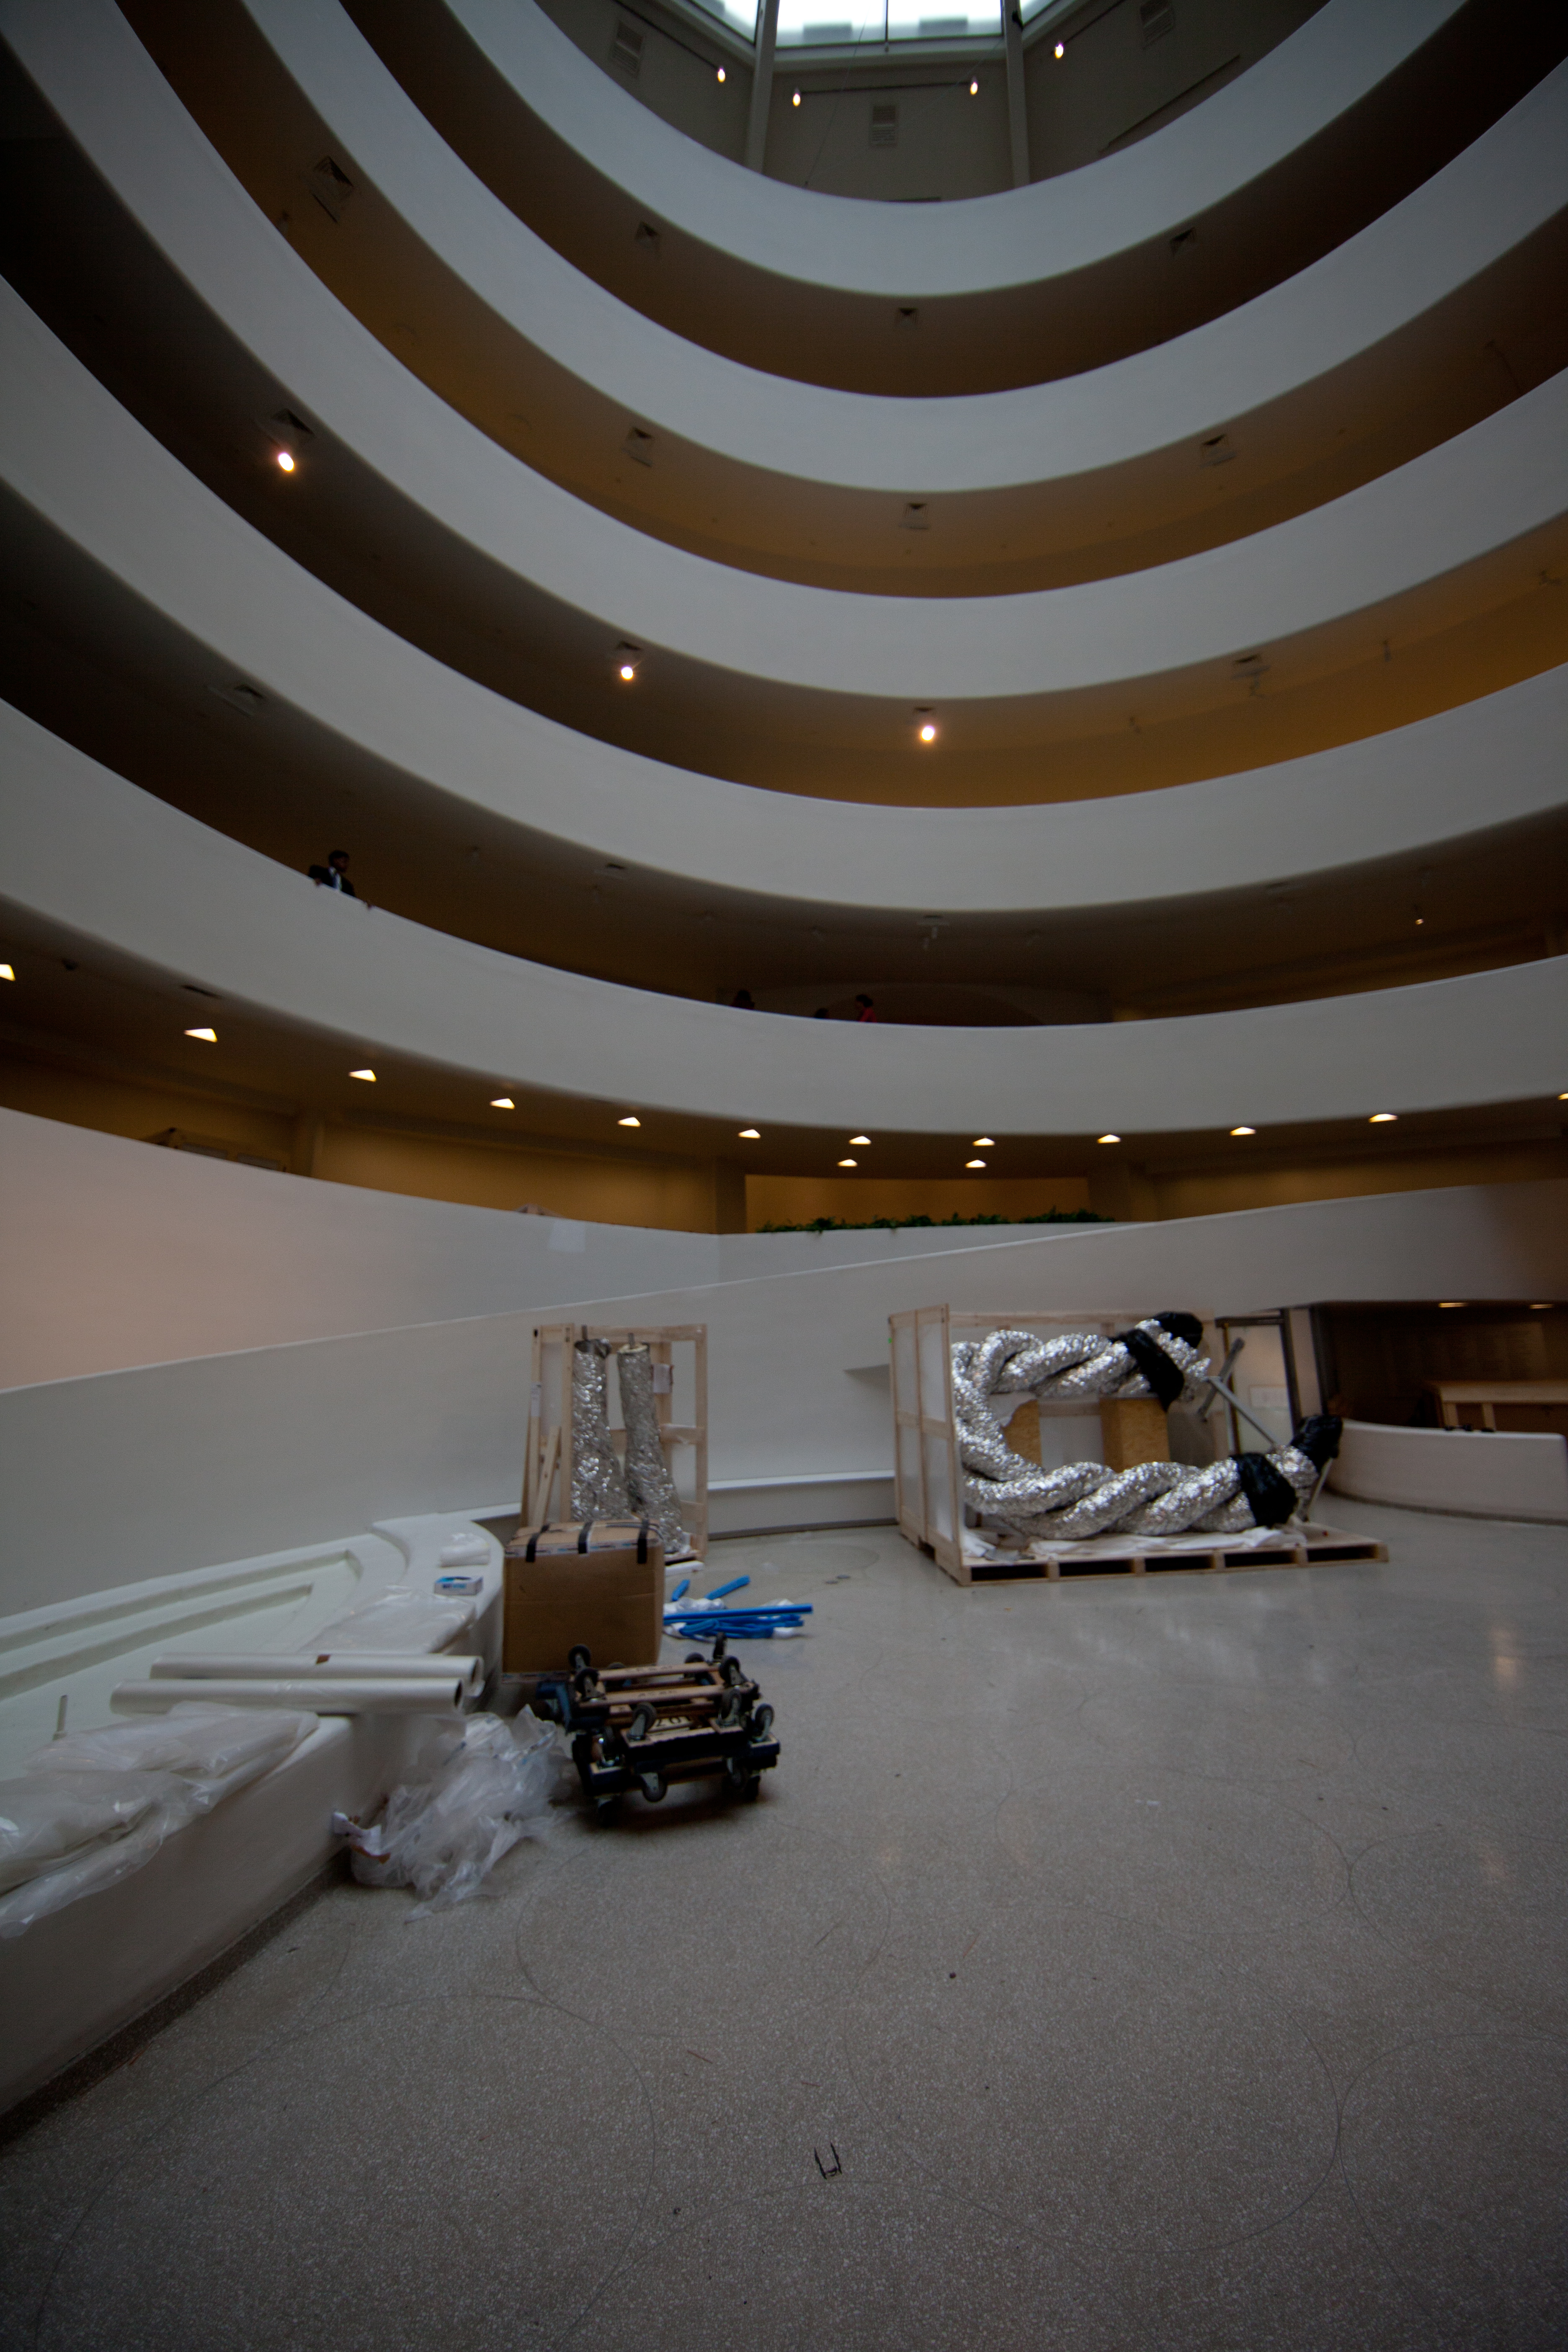 Check Out These Interesting Photos Of The Guggenheim